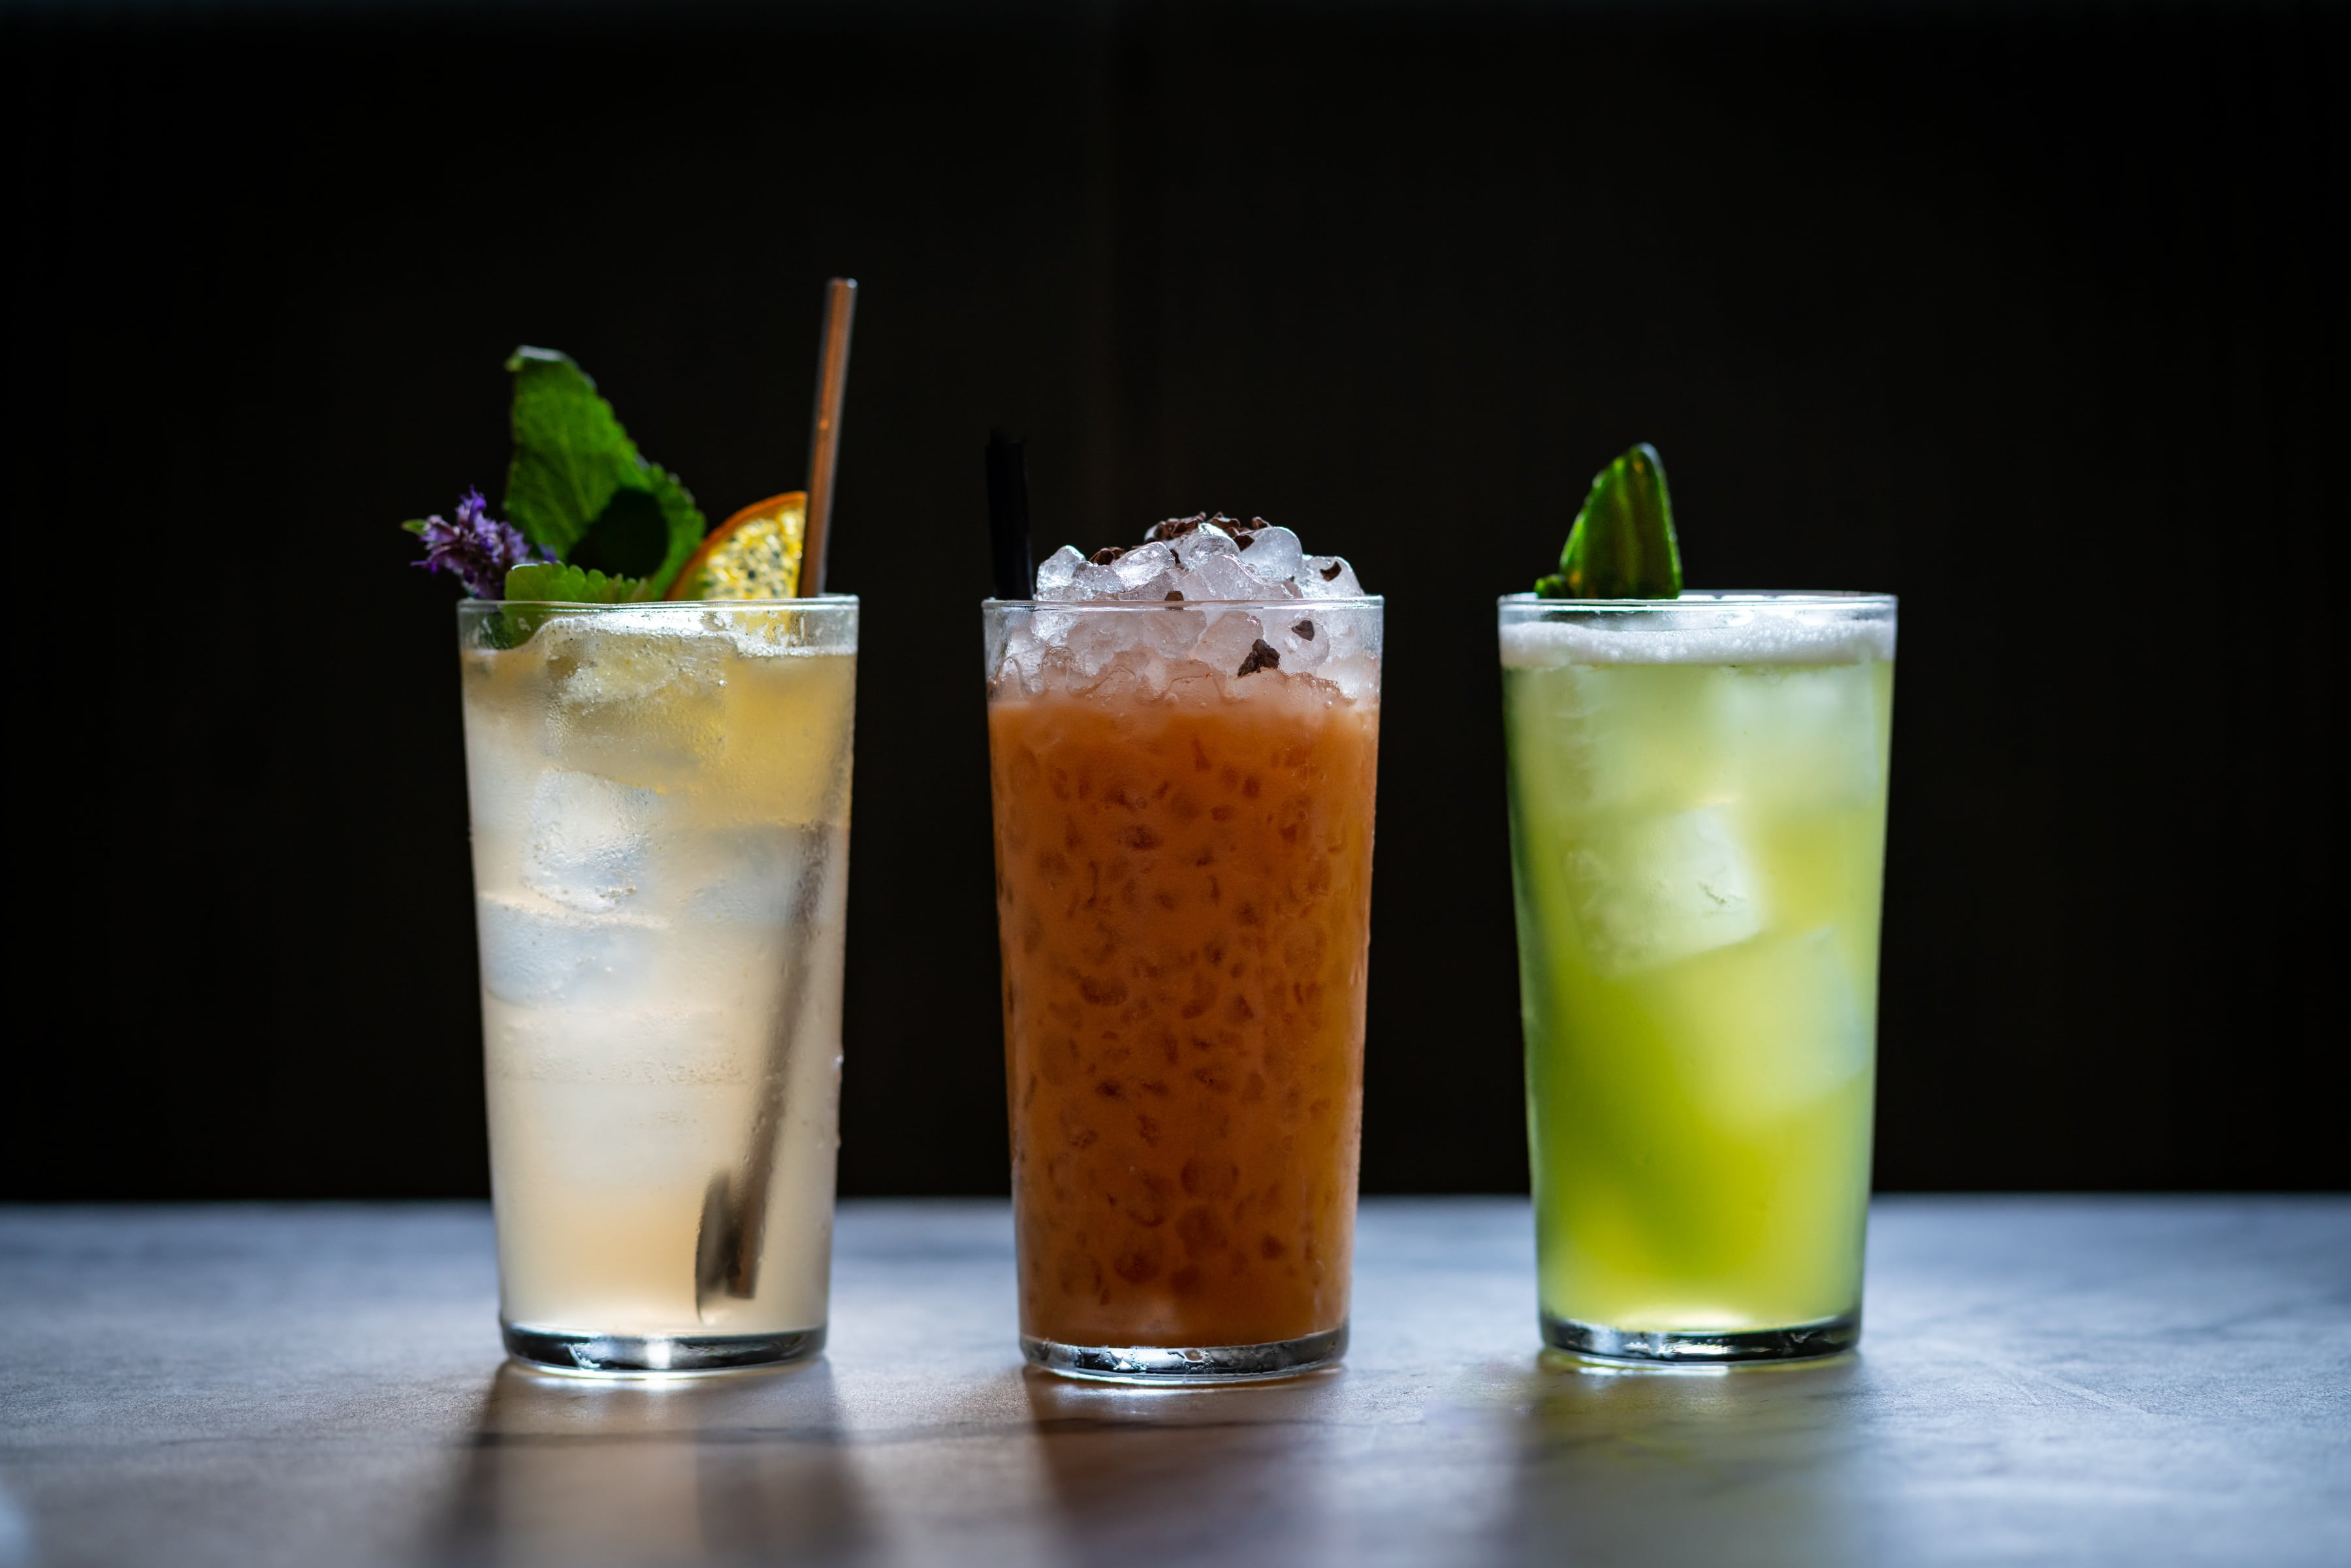 Gift ideas for non-alcoholic cocktails